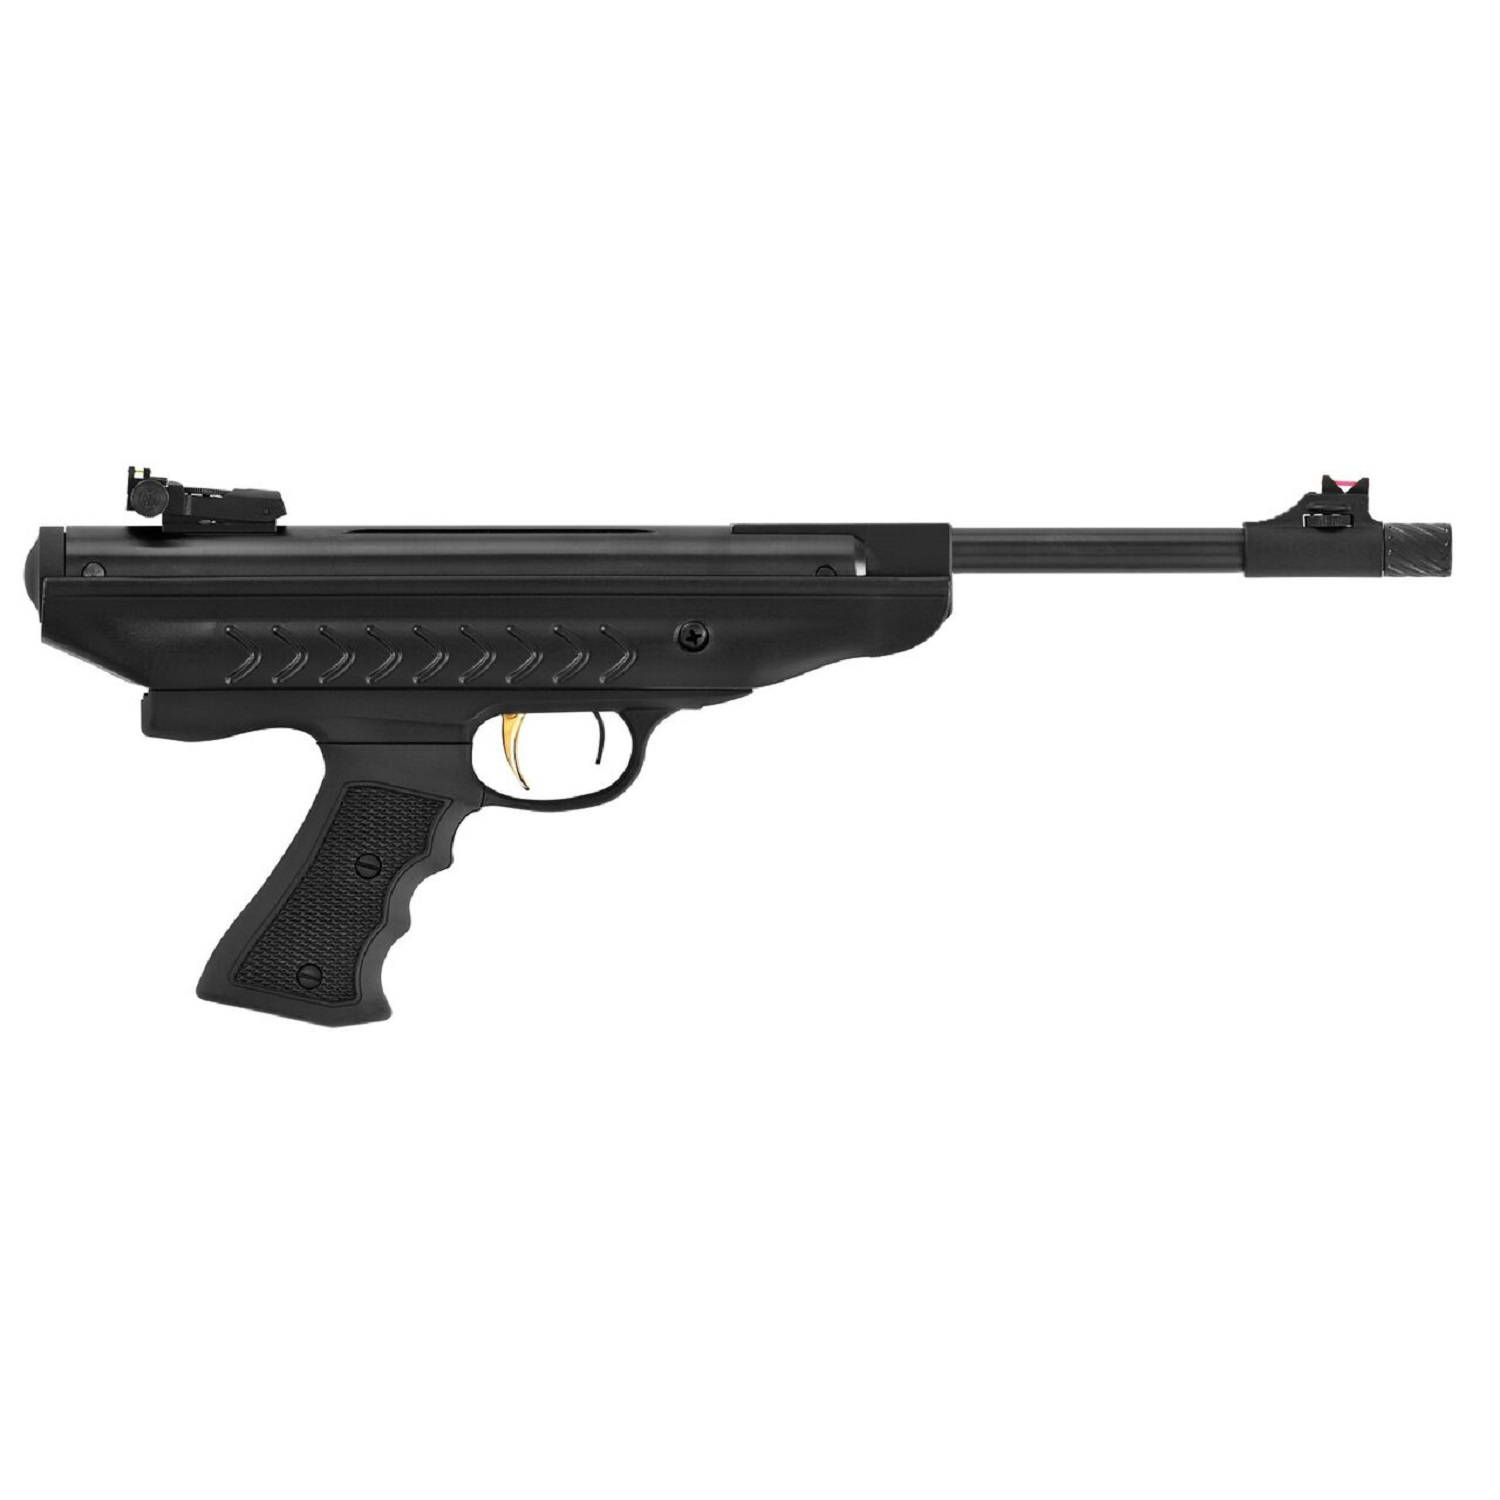 Hatsan Mod 25 Spring SuperCharger .177 Caliber Air Pistol